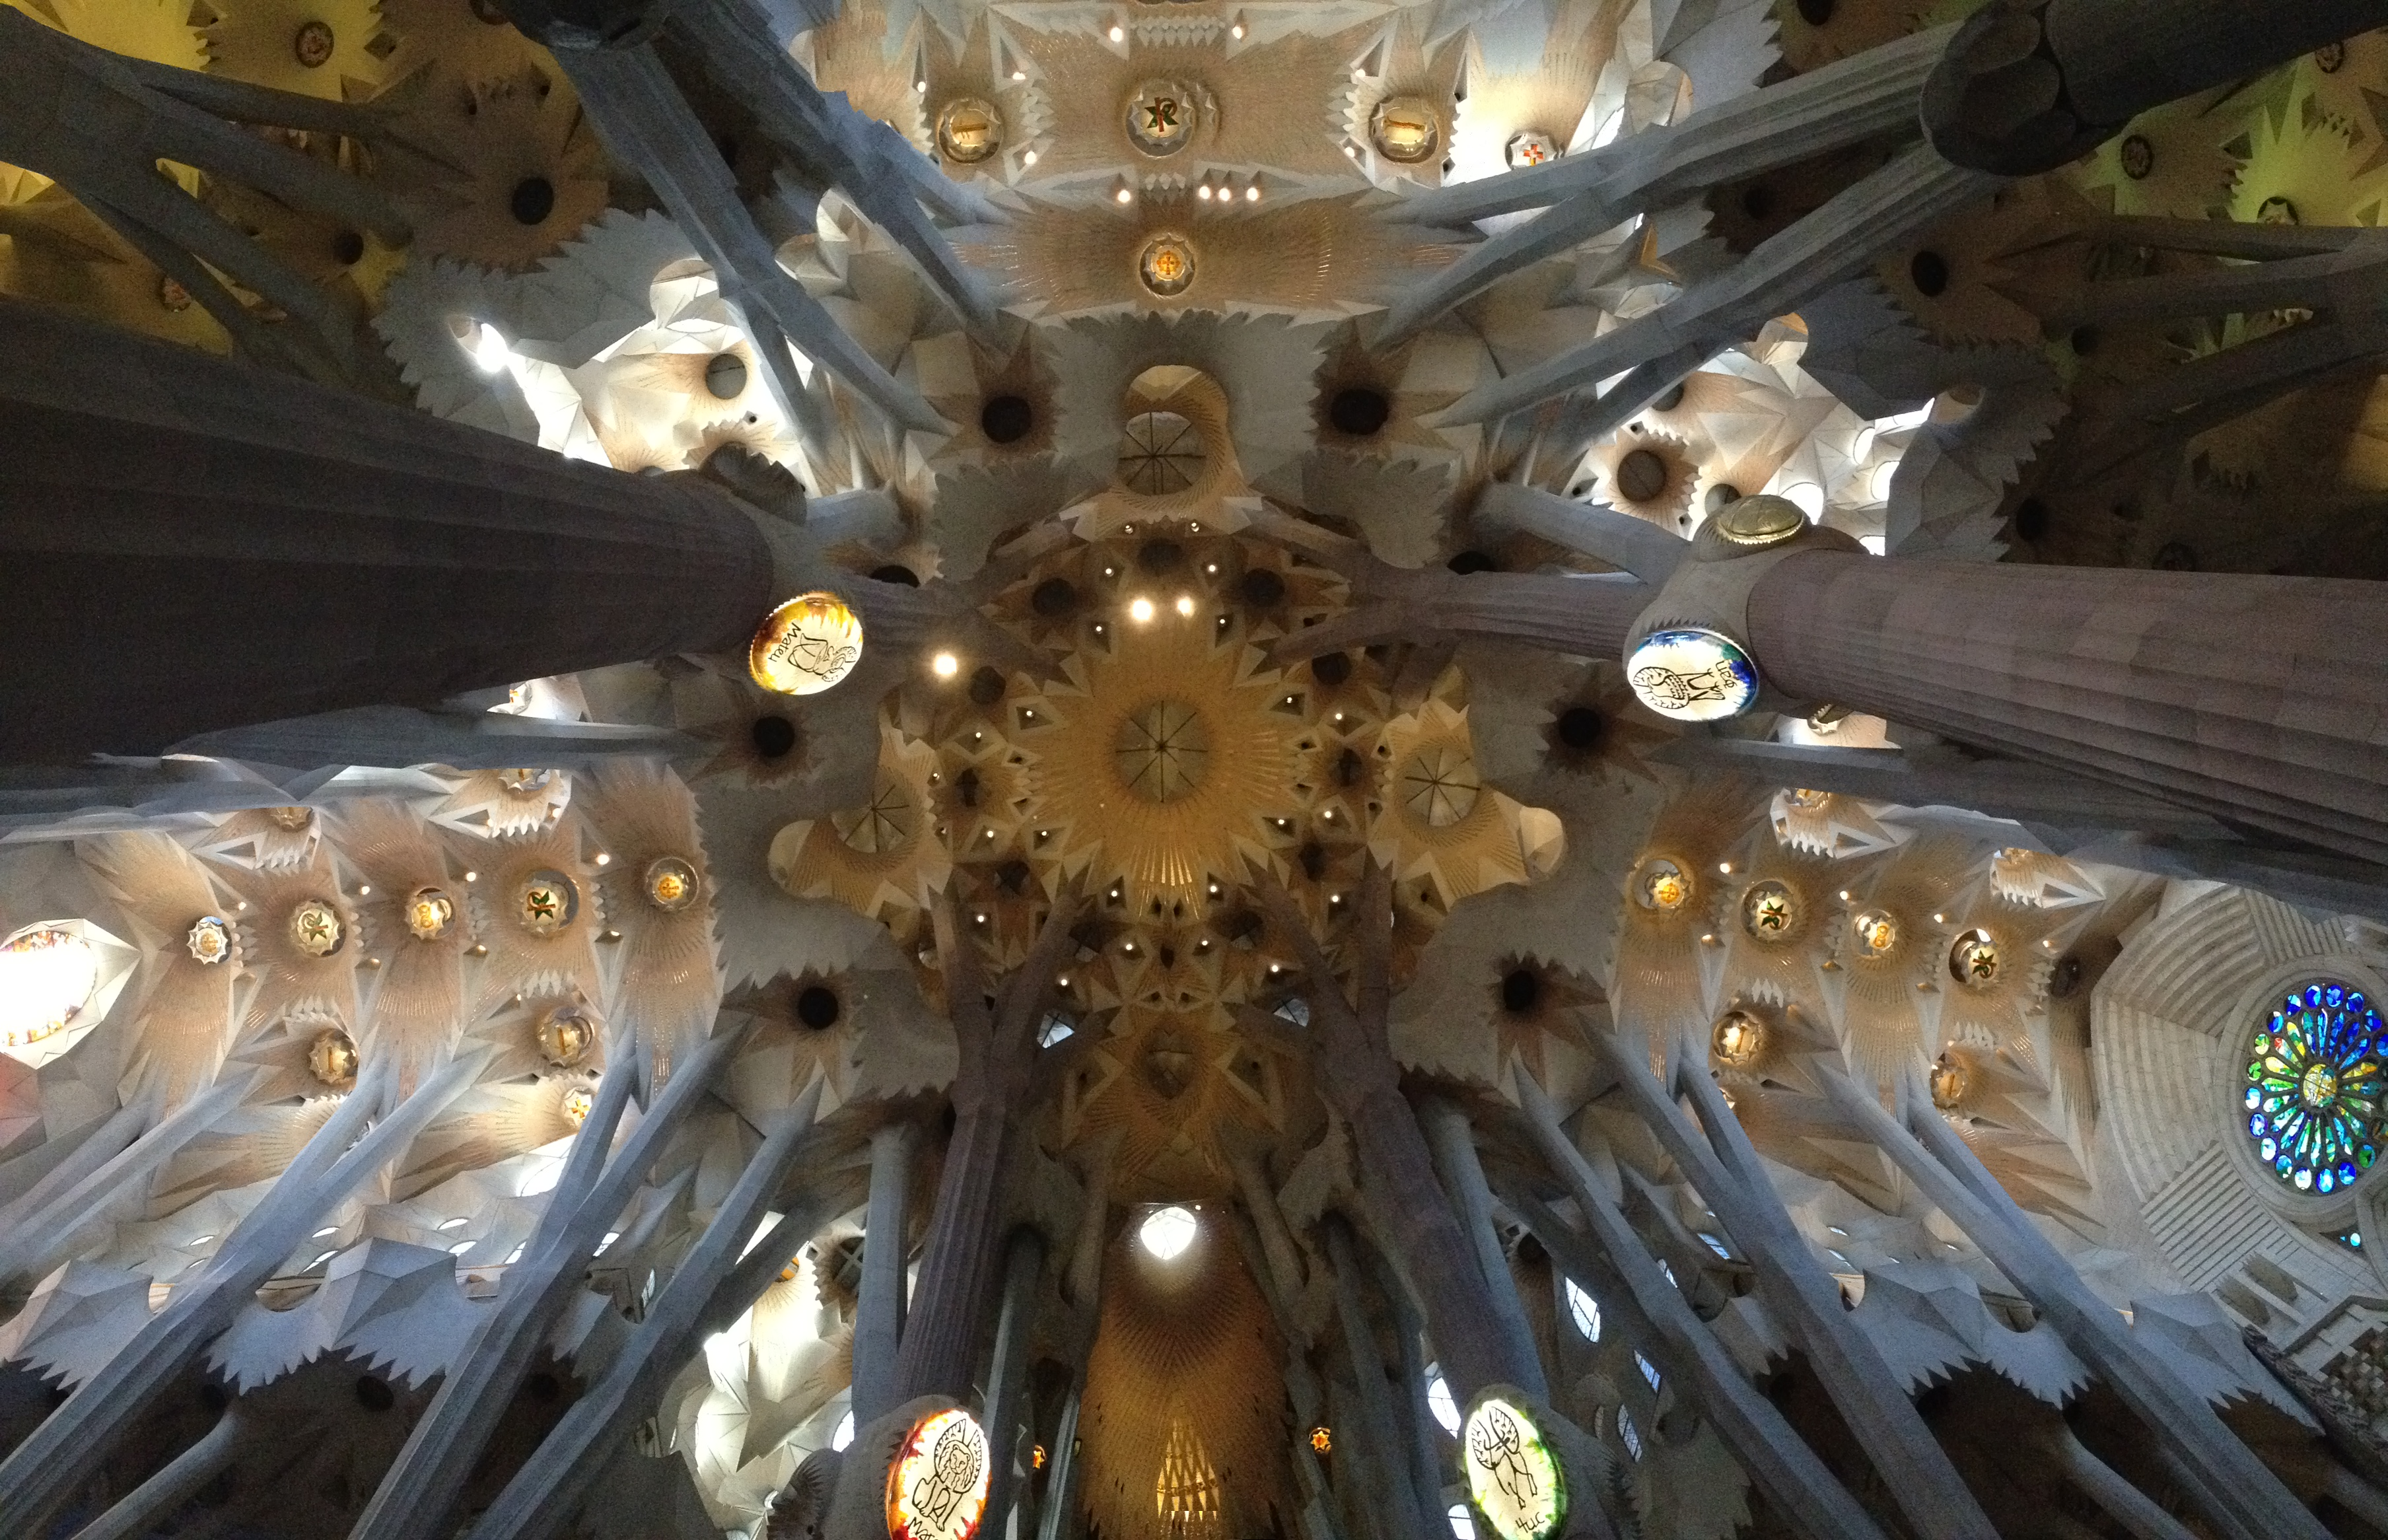 Antoni Gaudí and Interaction Design: thoughts about nature and sustainability